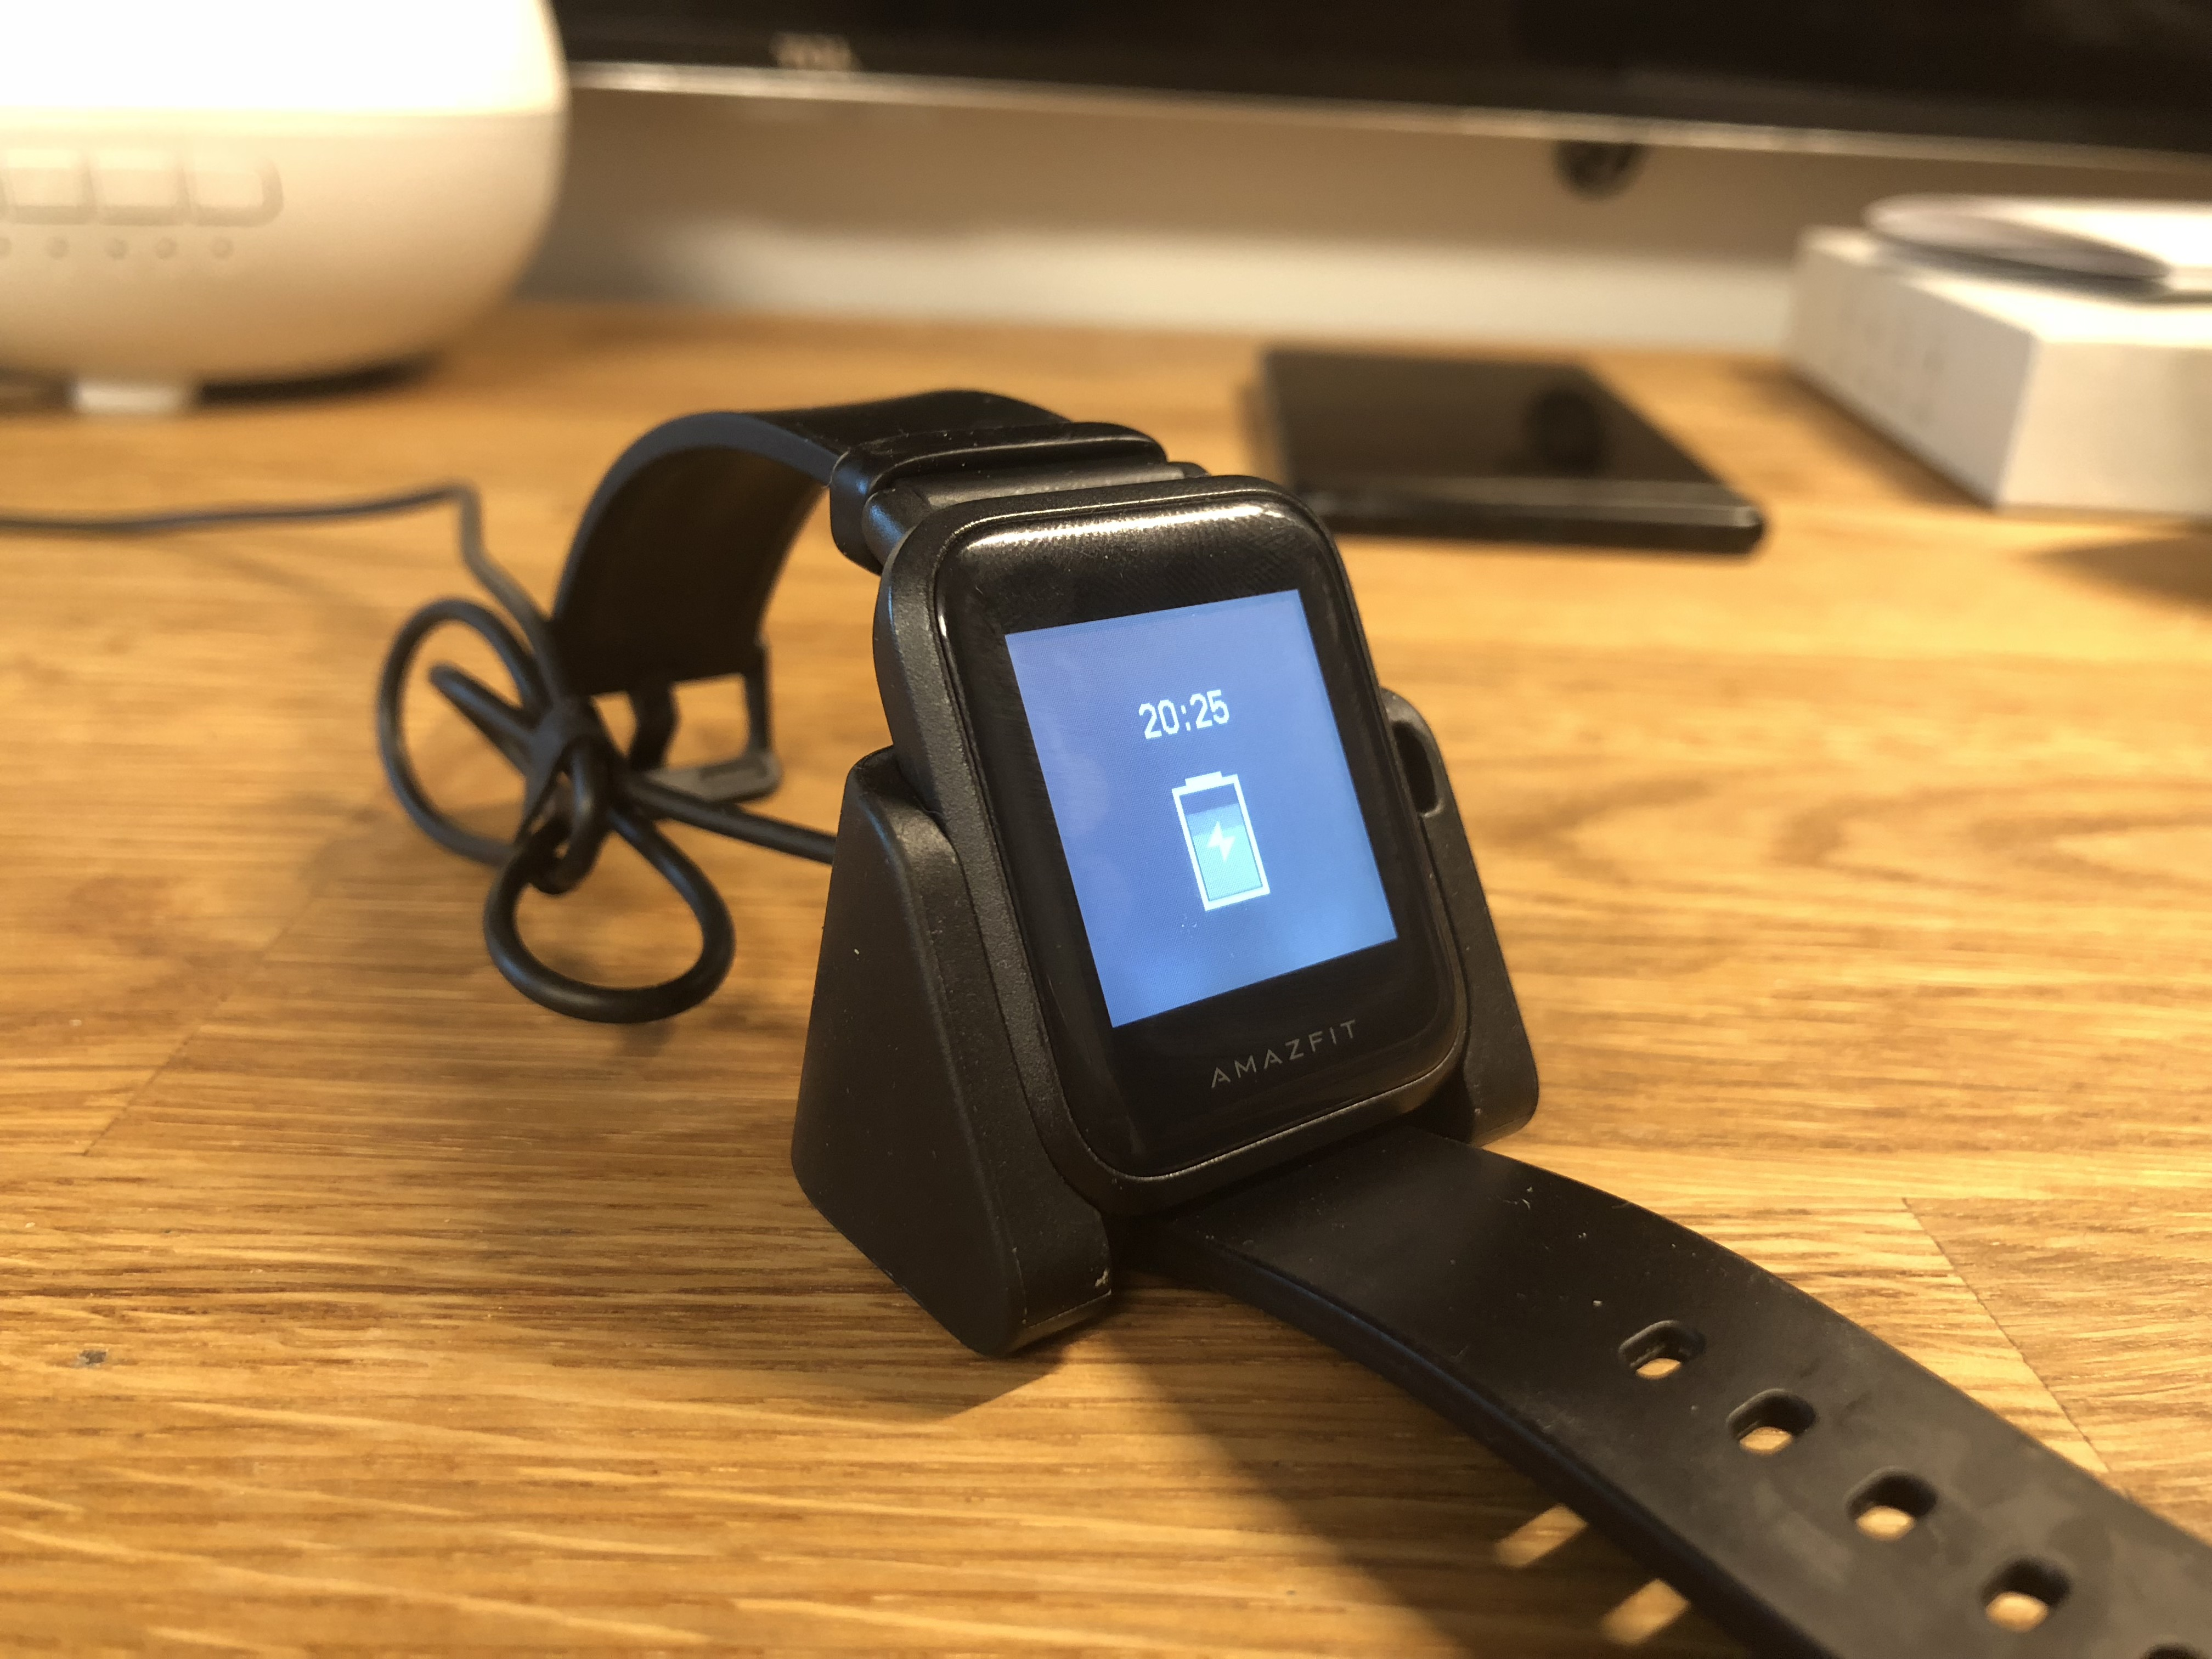 Xiaomi Huami Amazfit Bip The Best Smartwatch On Market For Me